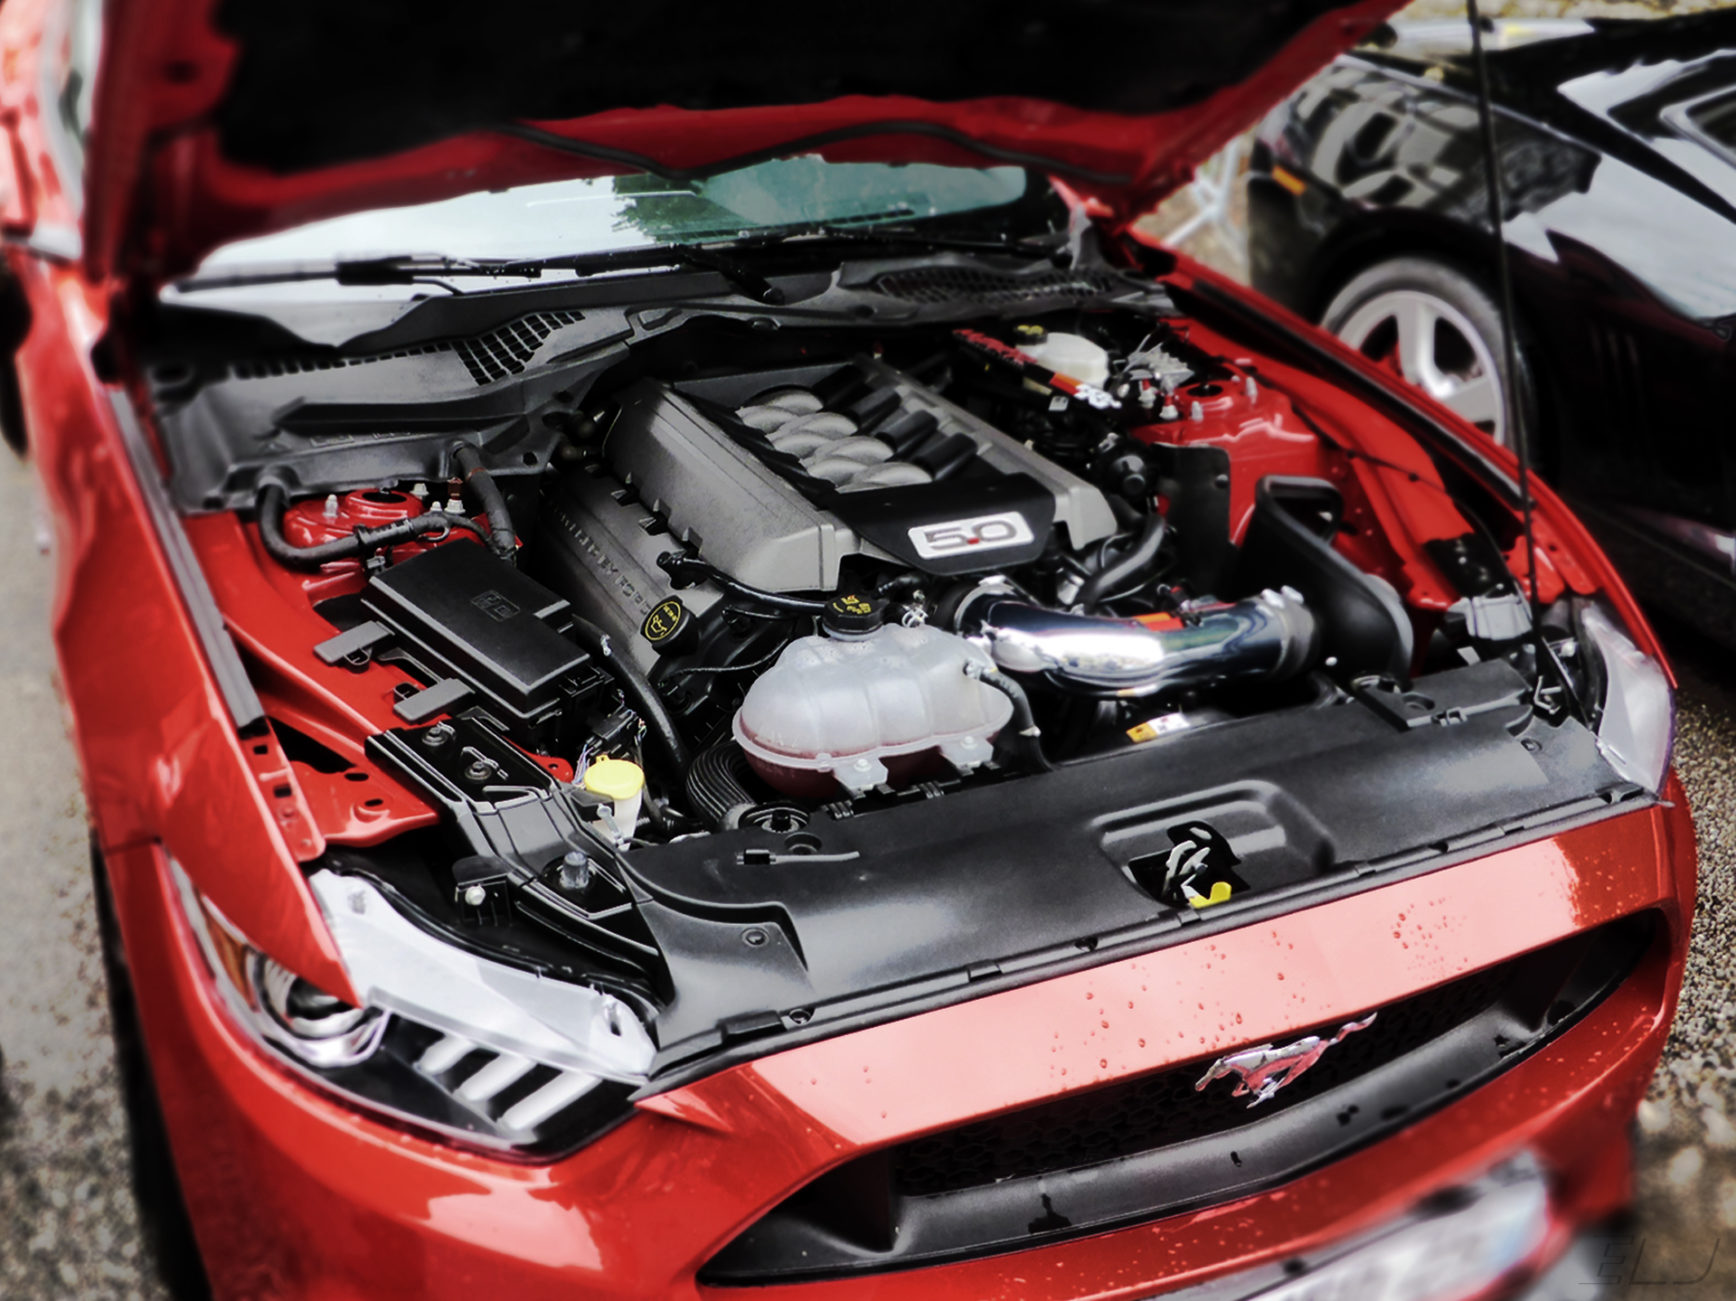 Ford Mustang GT - V8 under the hood - US Cars and Bikes - 2018 - photo ELJ DESIGNMOTEUR